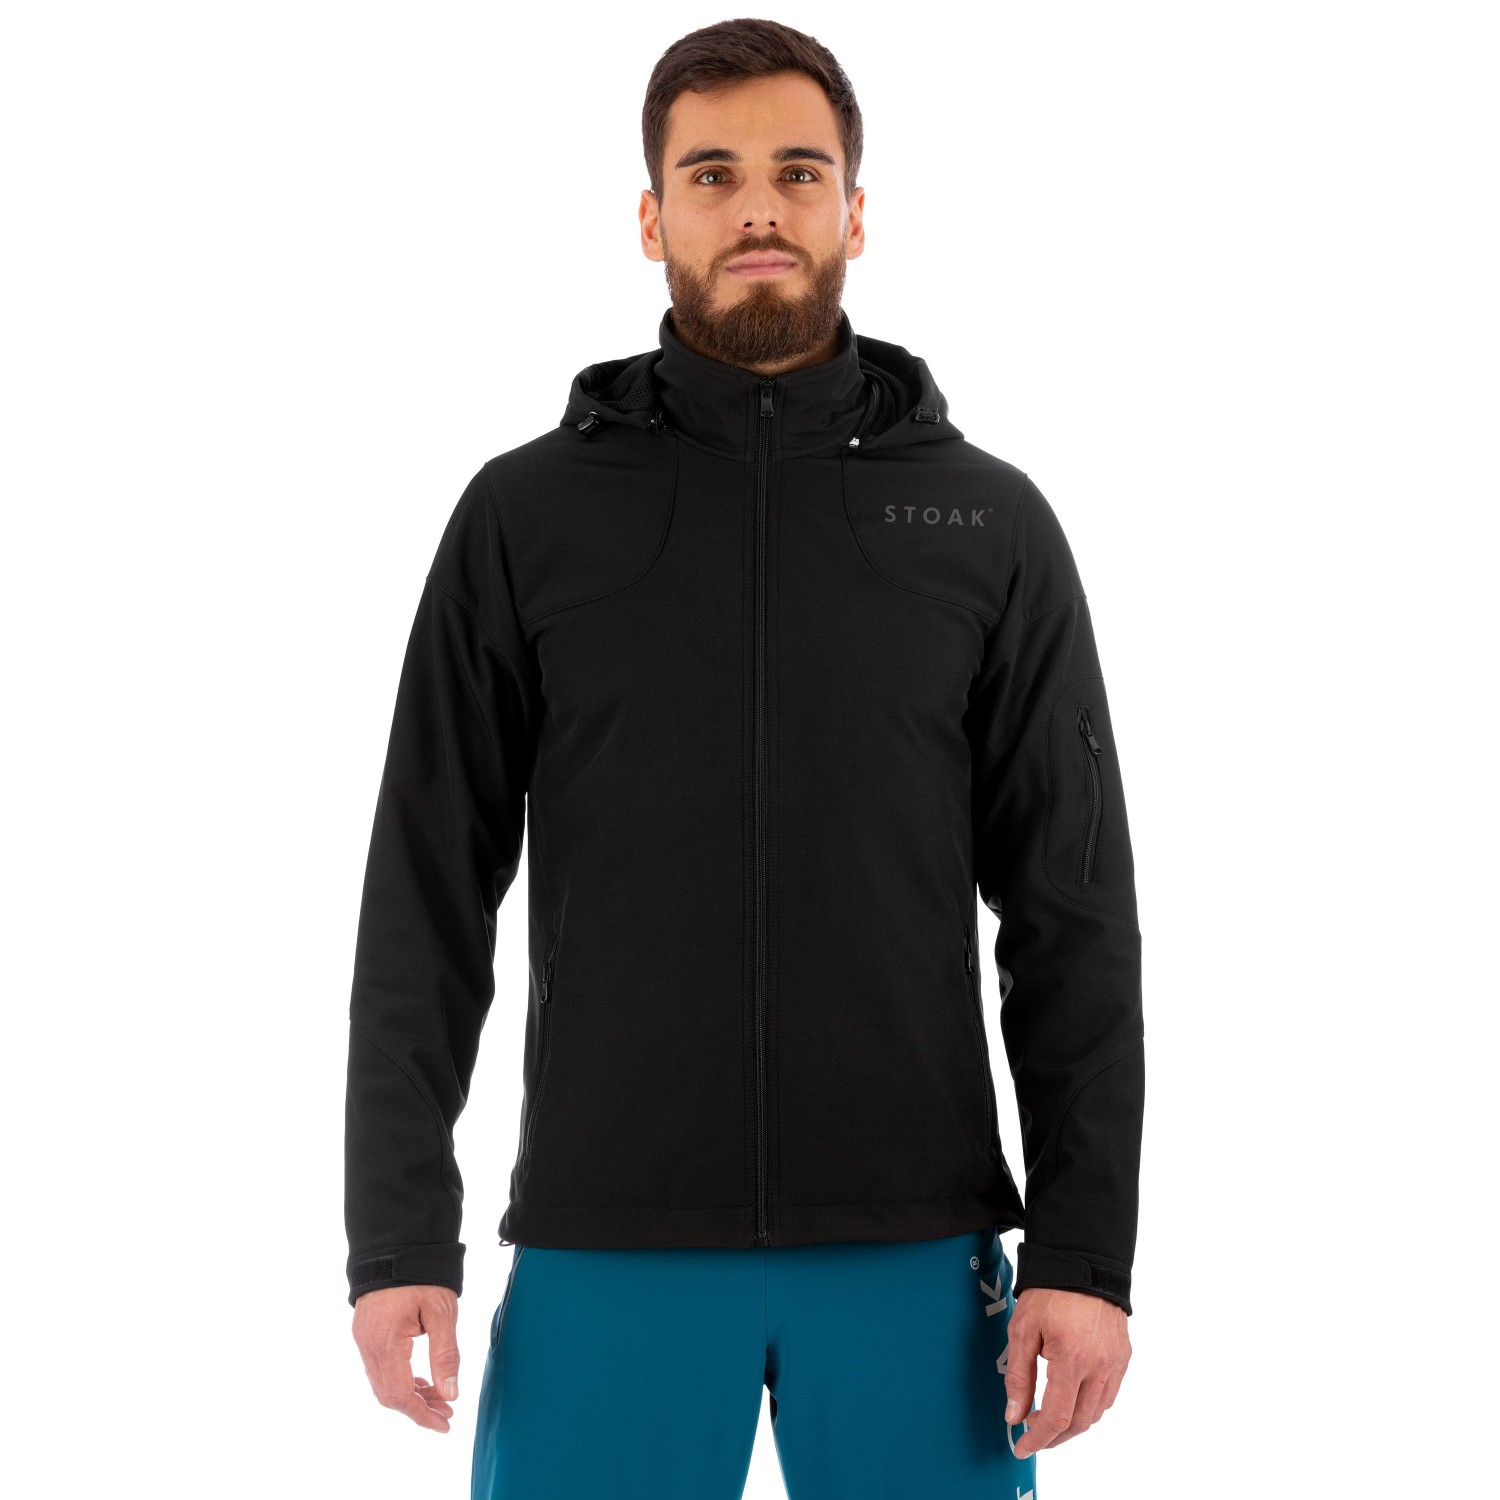 STOAK CARBON Performance Softshell Jacket